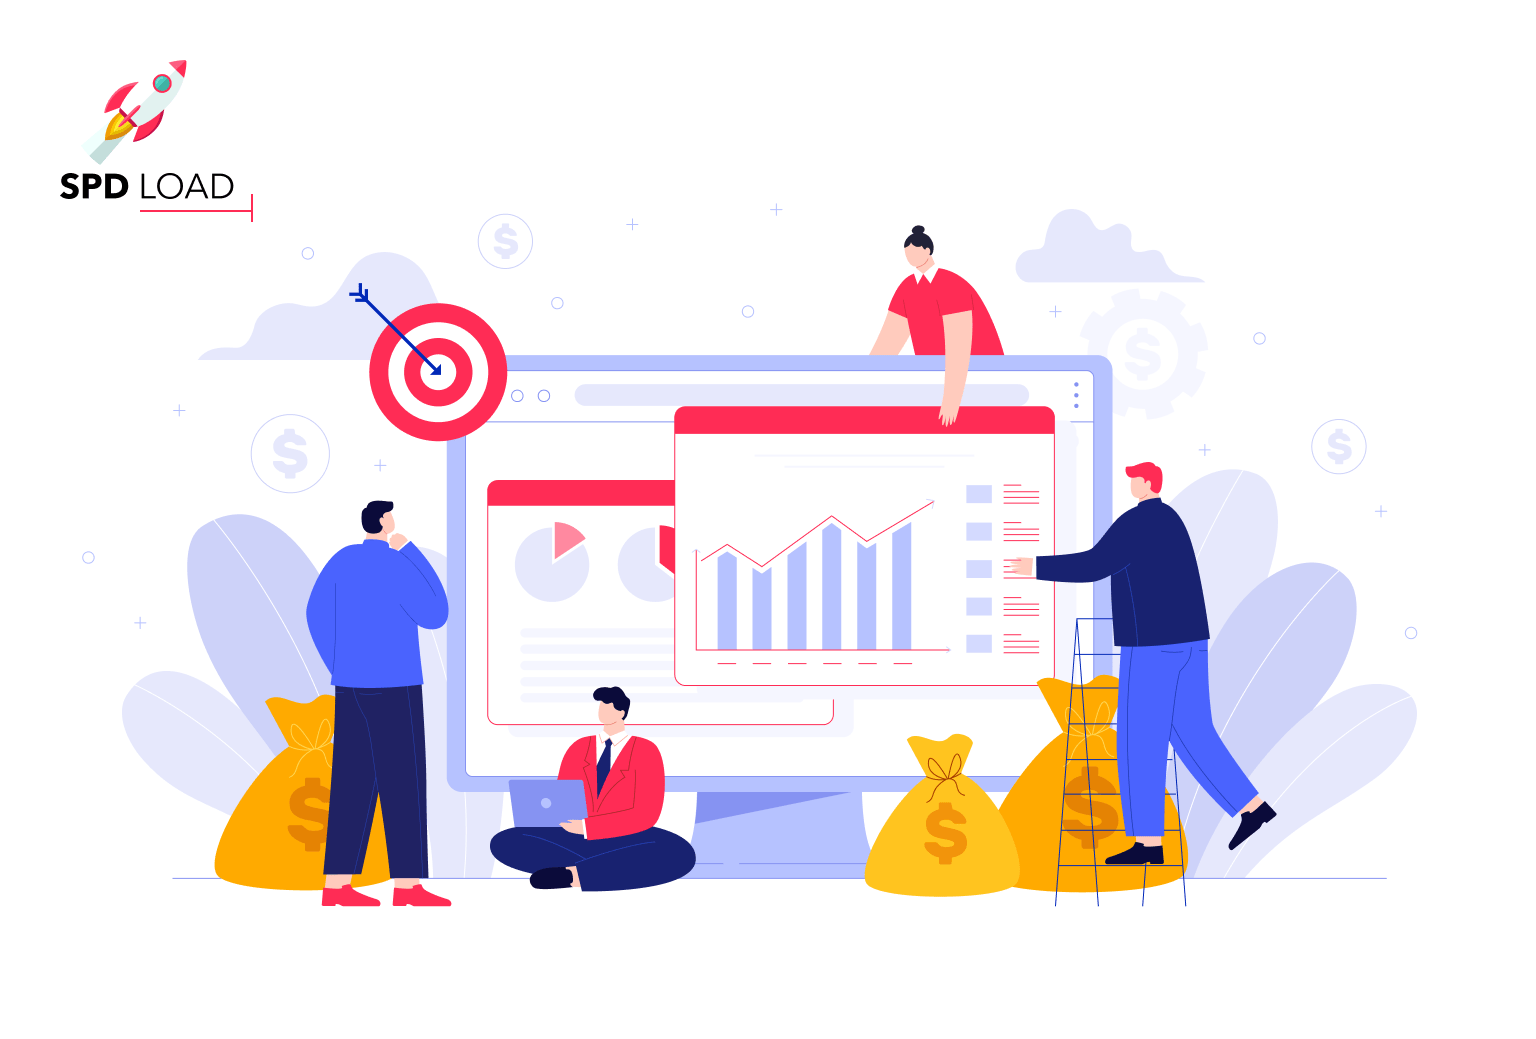 SpdLoad prepared an in-depth guide on how much does it cost to make a business website